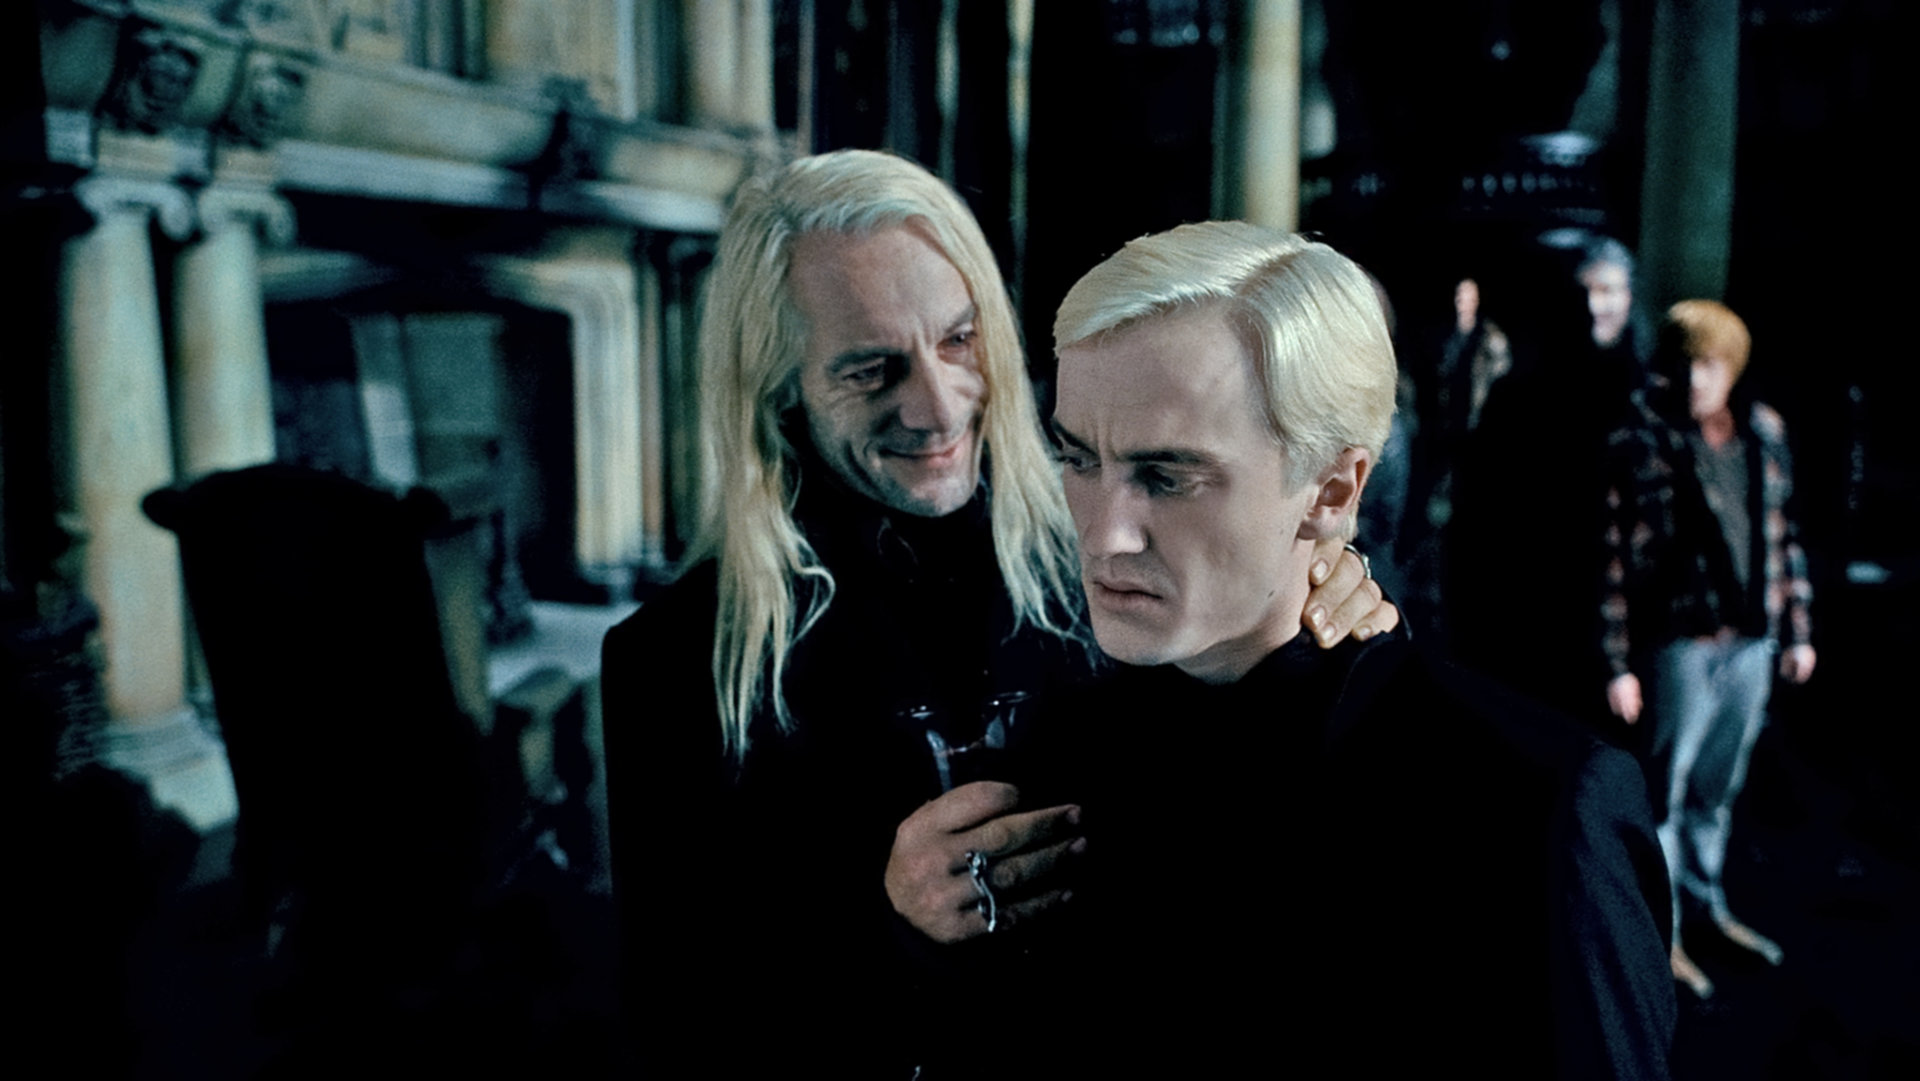 Lucius smiles at Draco and presses his nape affectionately in order to persuade Draco to identify Harry Potter.